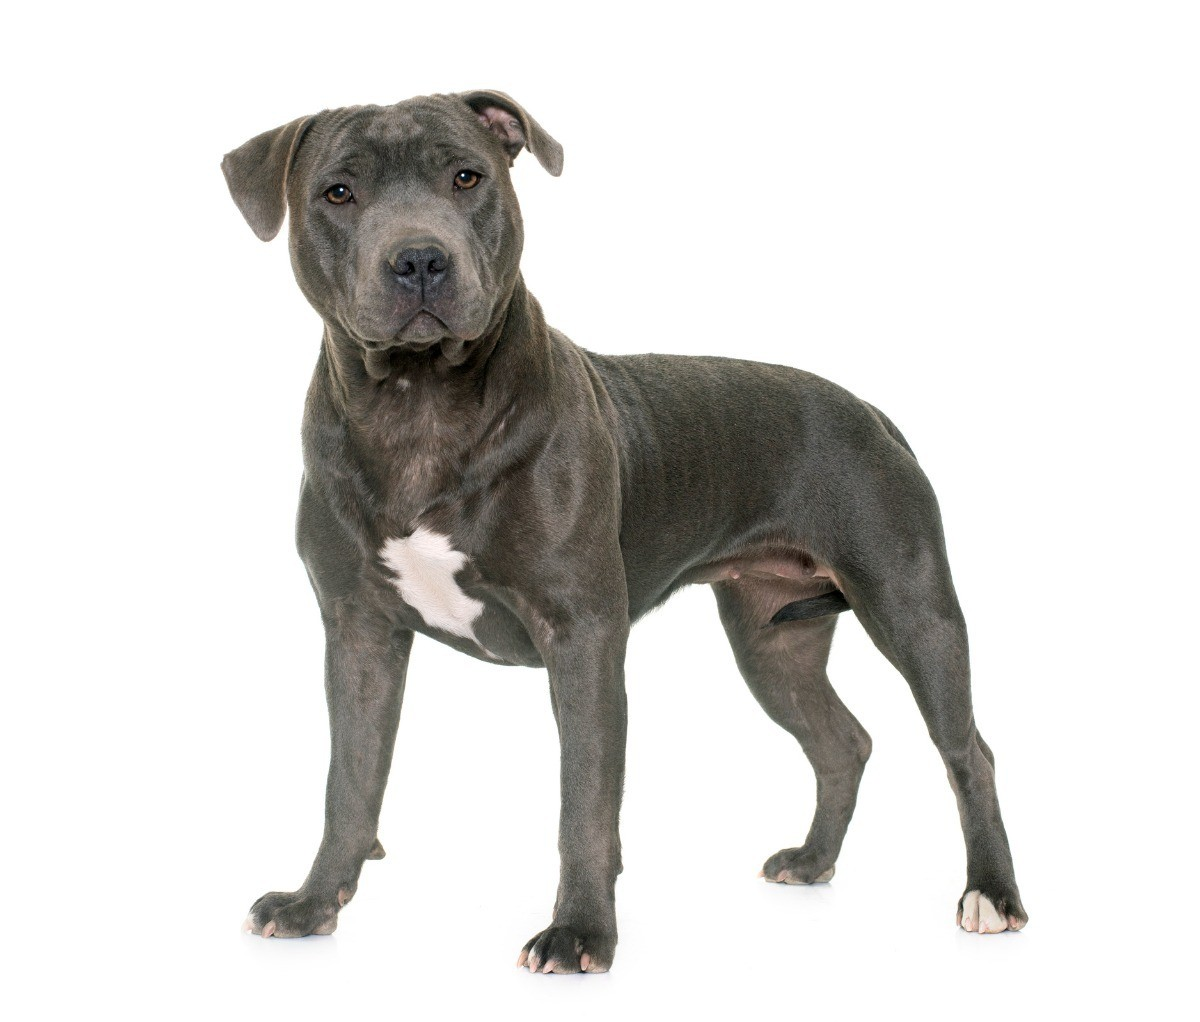 Is a Staffordshire Bull Terrier the Same as a Pit Bull